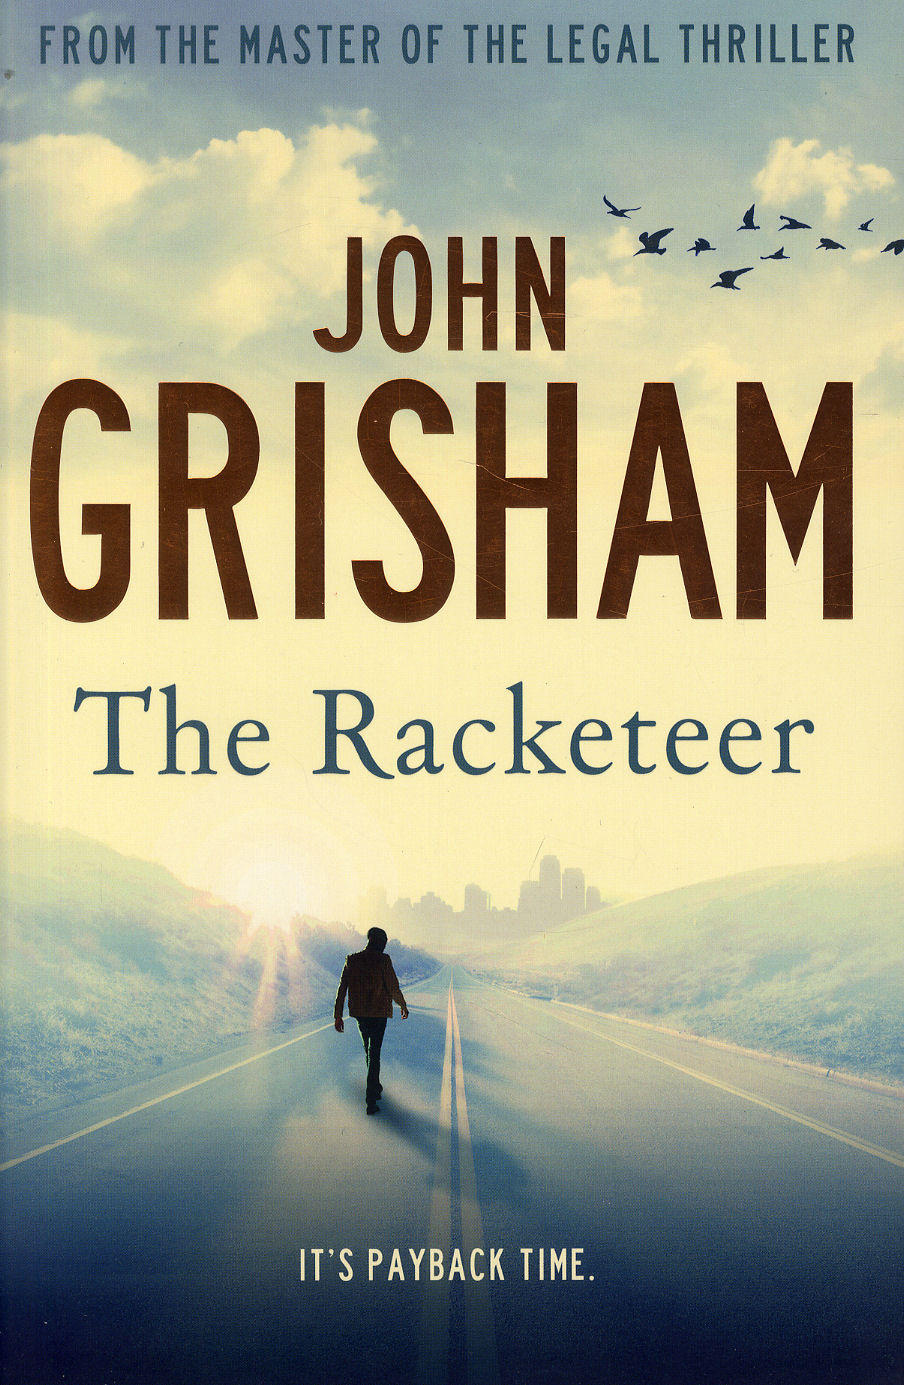 a review of the novel the firm by john grisham The firm, john grisham the firm is a 1991 legal thriller by american writer john grisham his second book, it was grisham's first which gained wide popularity in 1993, it was made into a film starring tom cruise and gene hackman.